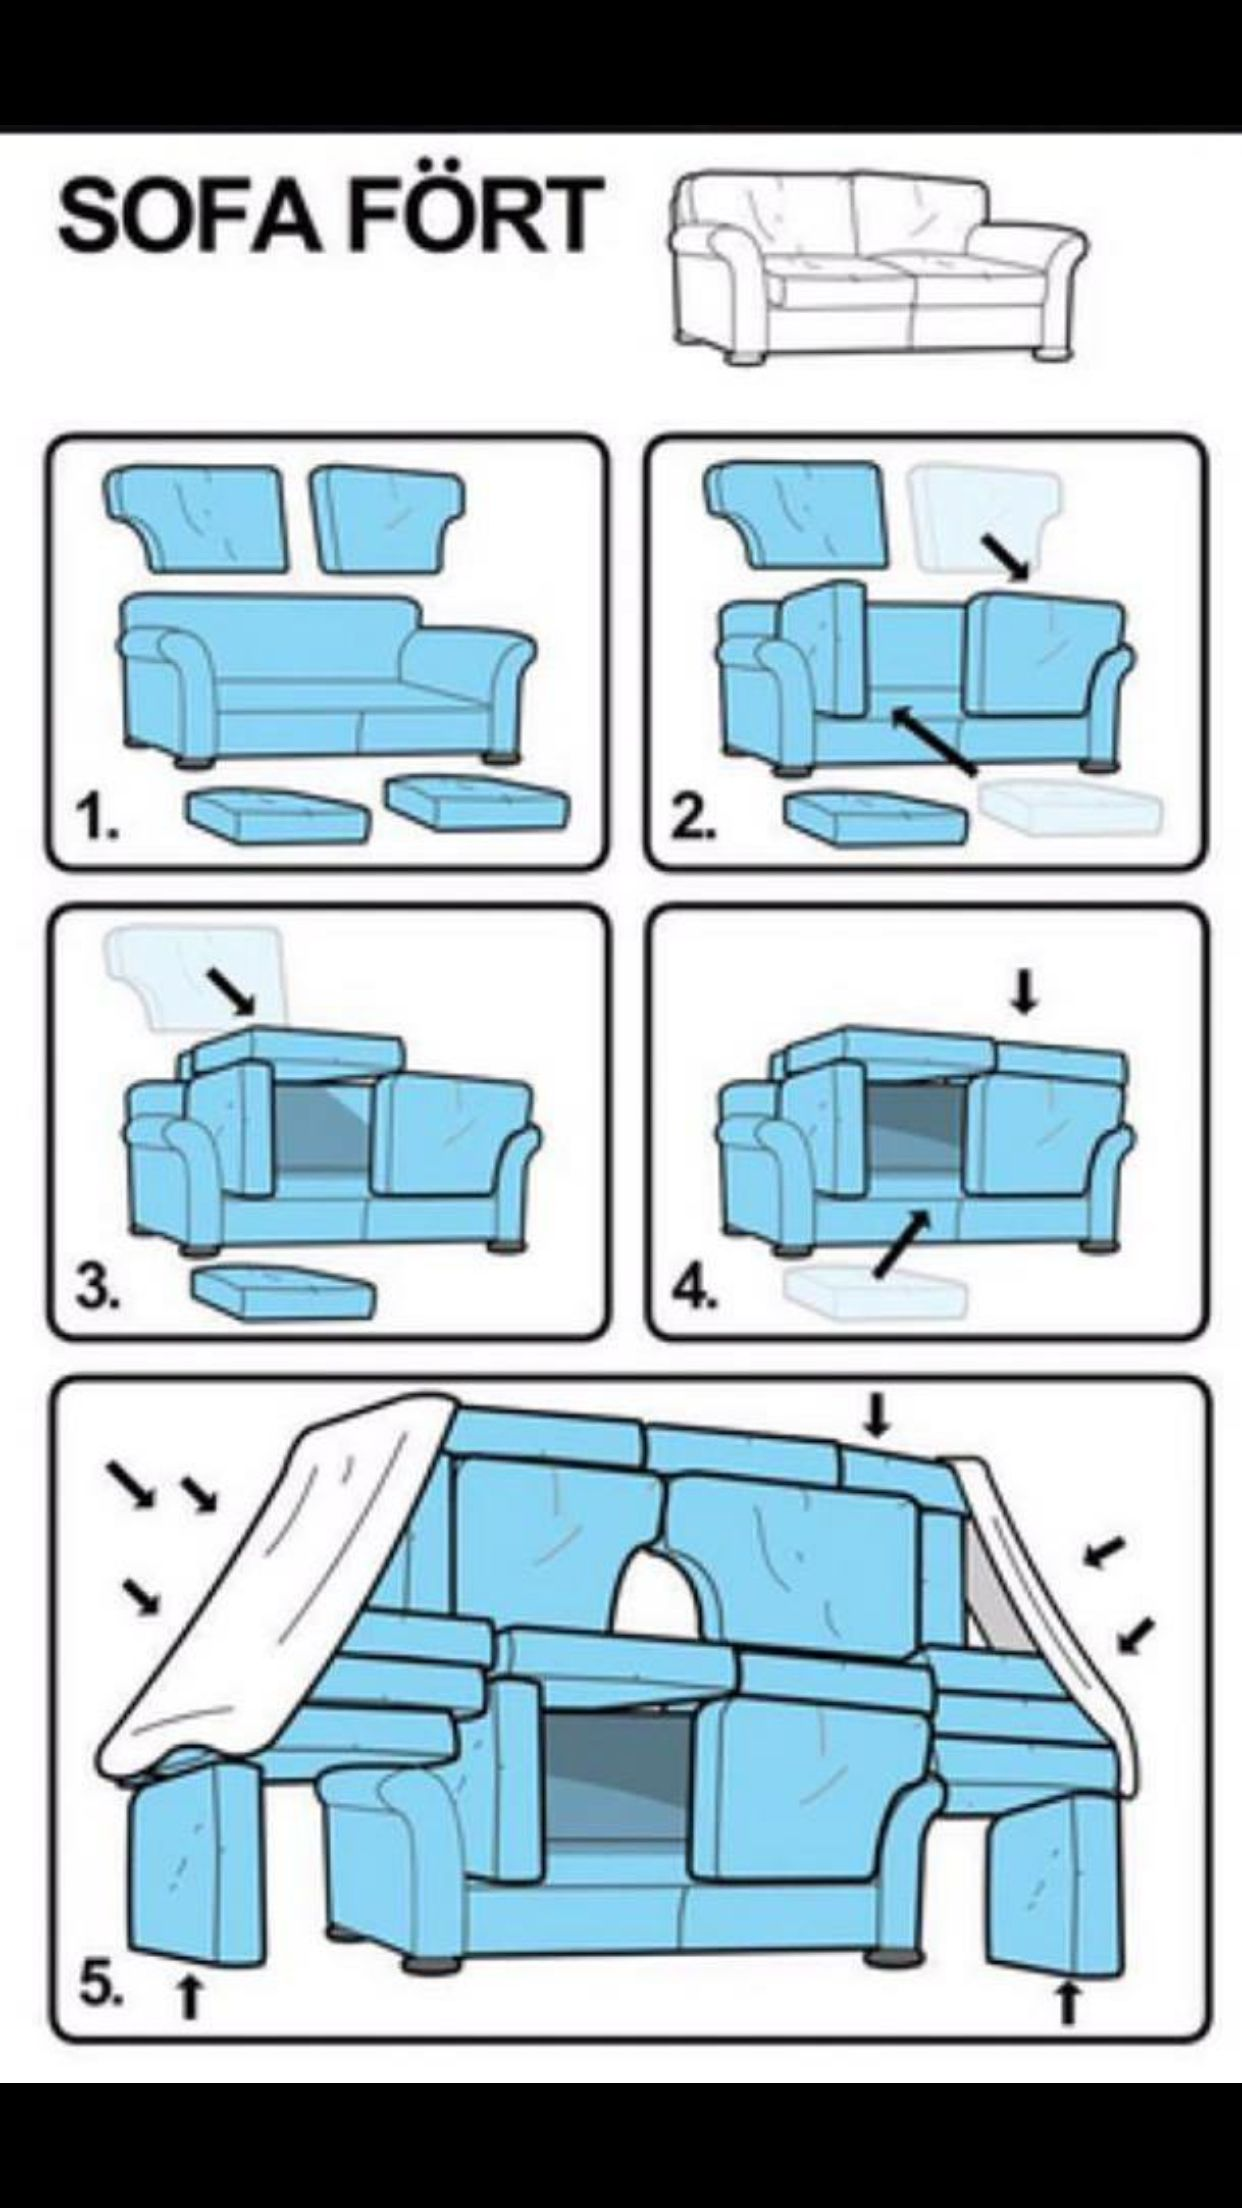 Hacer Sofa Infantil Sofa Fort We Loved Building All Kinds Of Forts In The House When